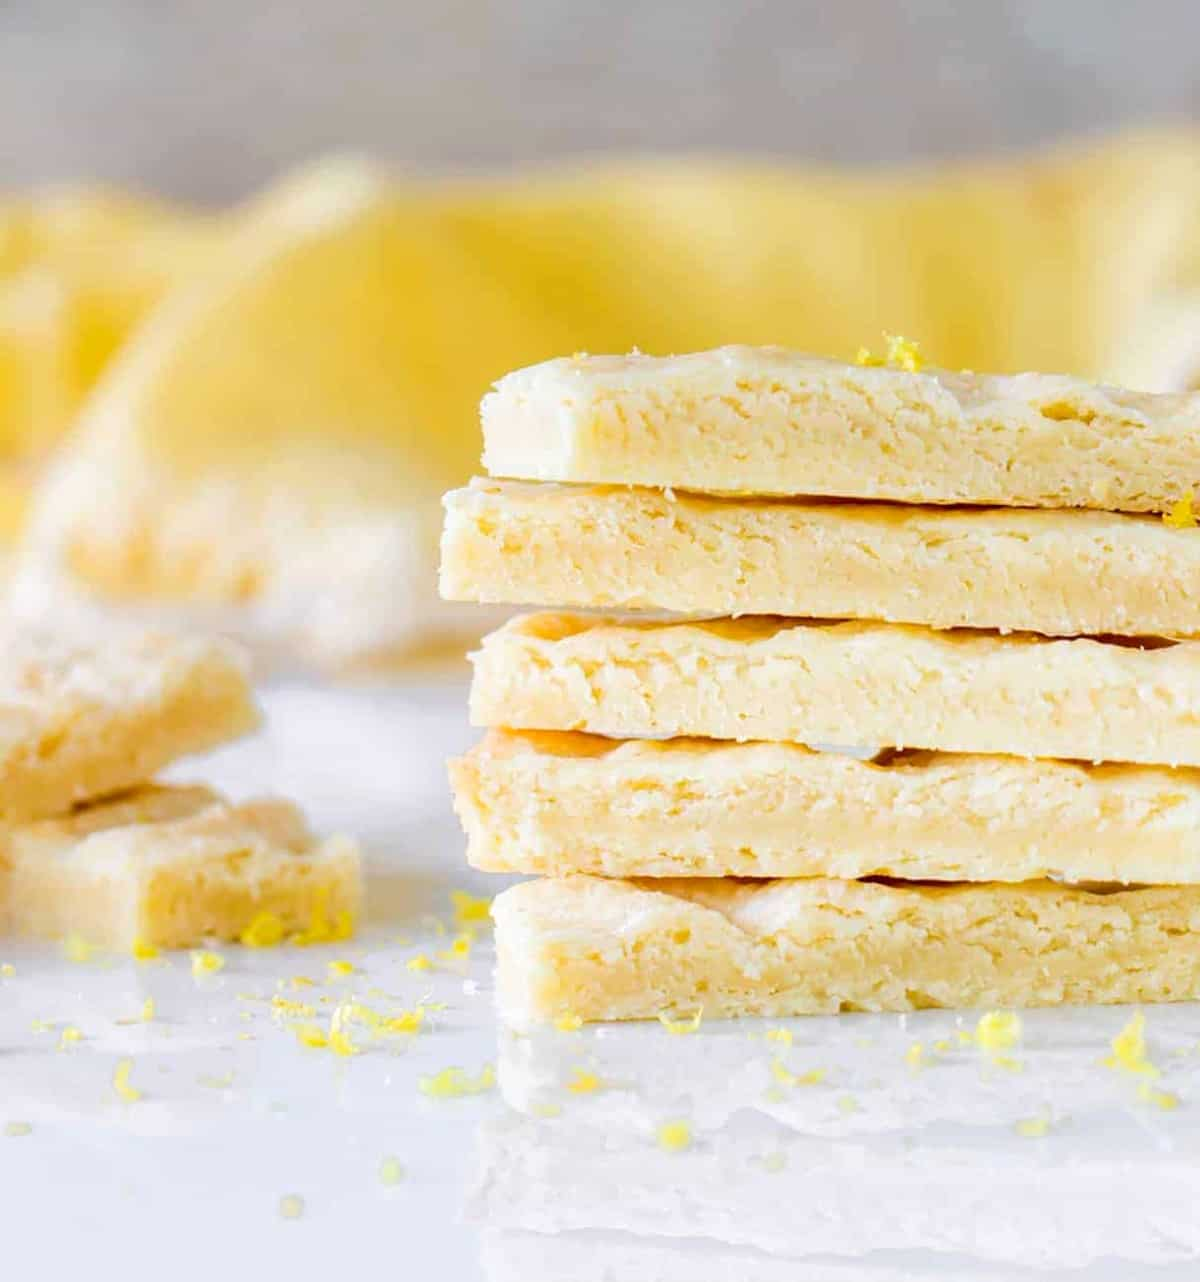 Lemon shortbread fingers stacked on white marble surface; yellow background